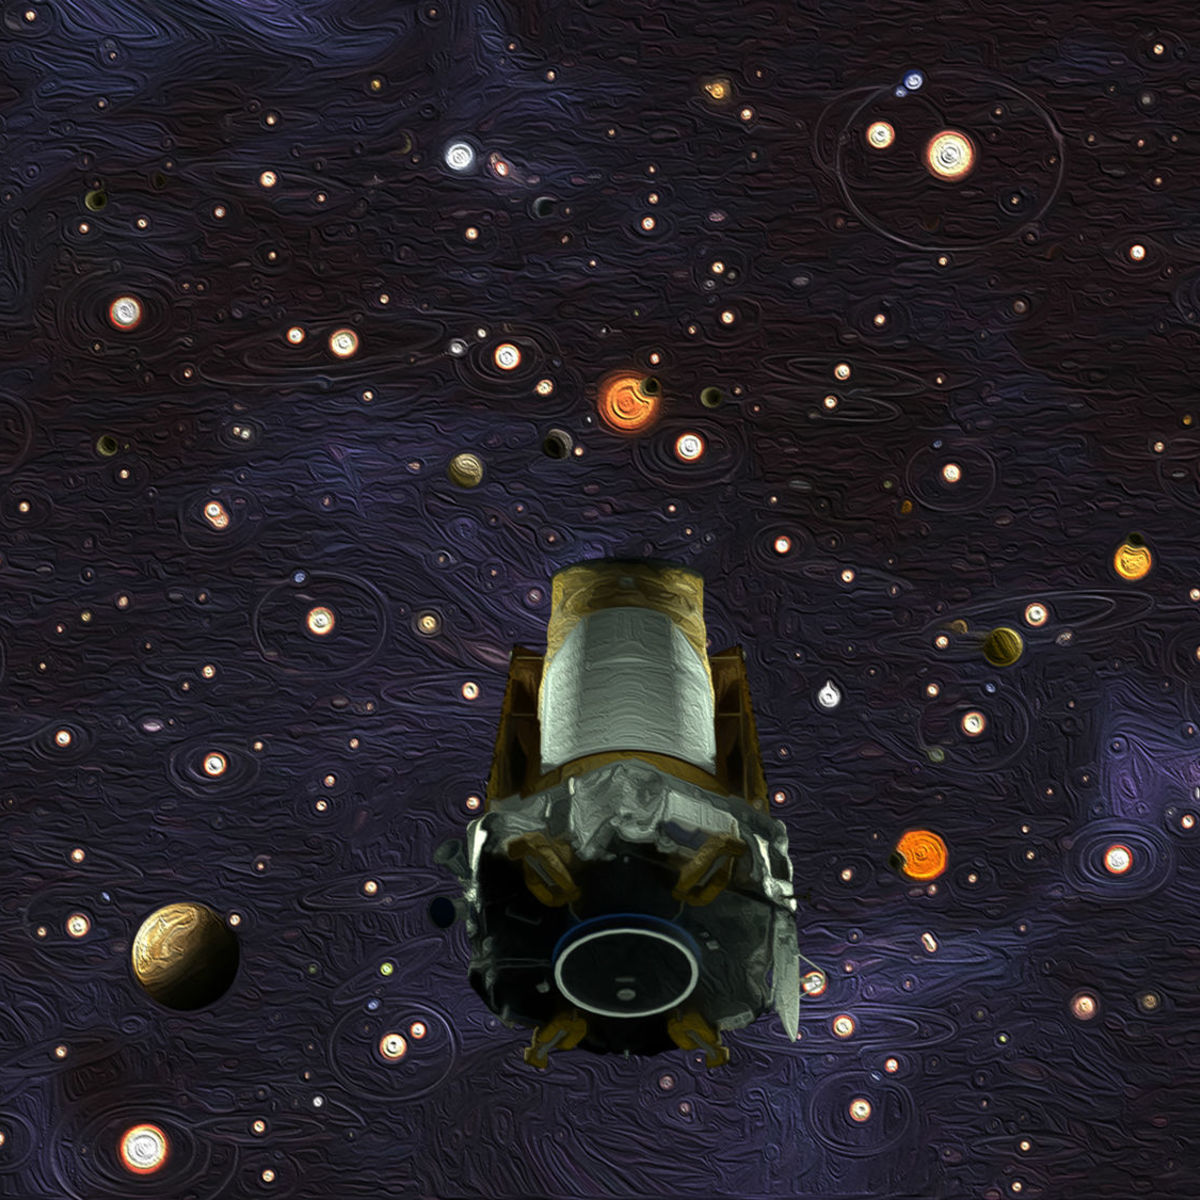 NASA's Kepler Space Telescope retires after 9 years of discovering planets